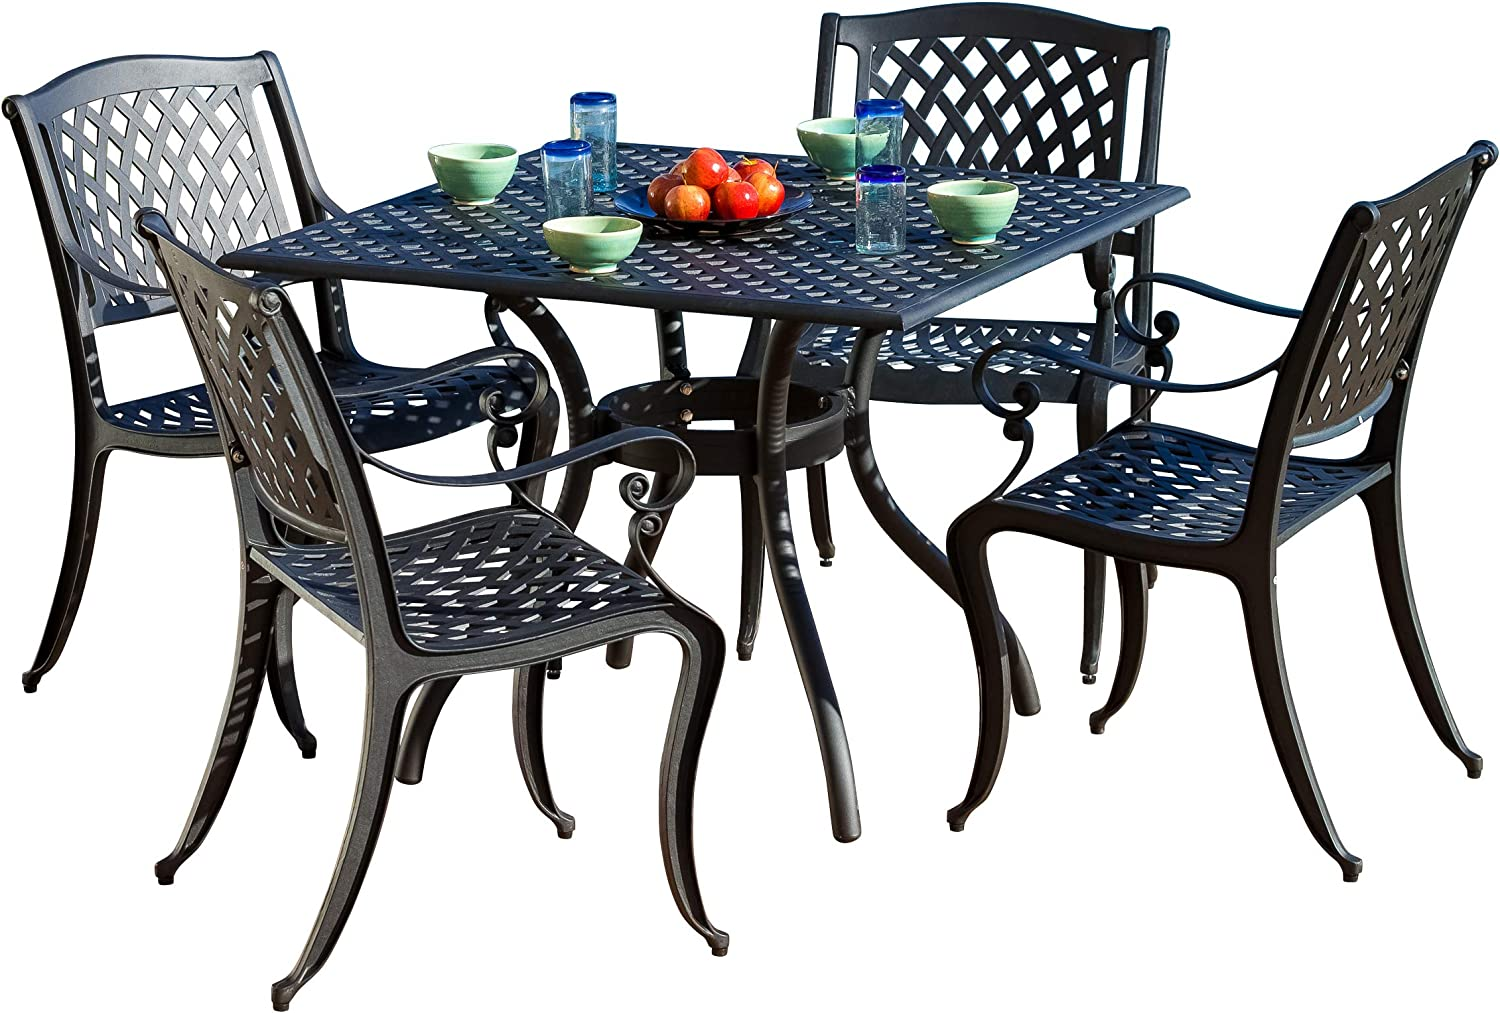 Christopher Knight Home Hallandale Cast Aluminum Outdoor Dining Set 5 Pcs Set Black Sand Garden Outdoor